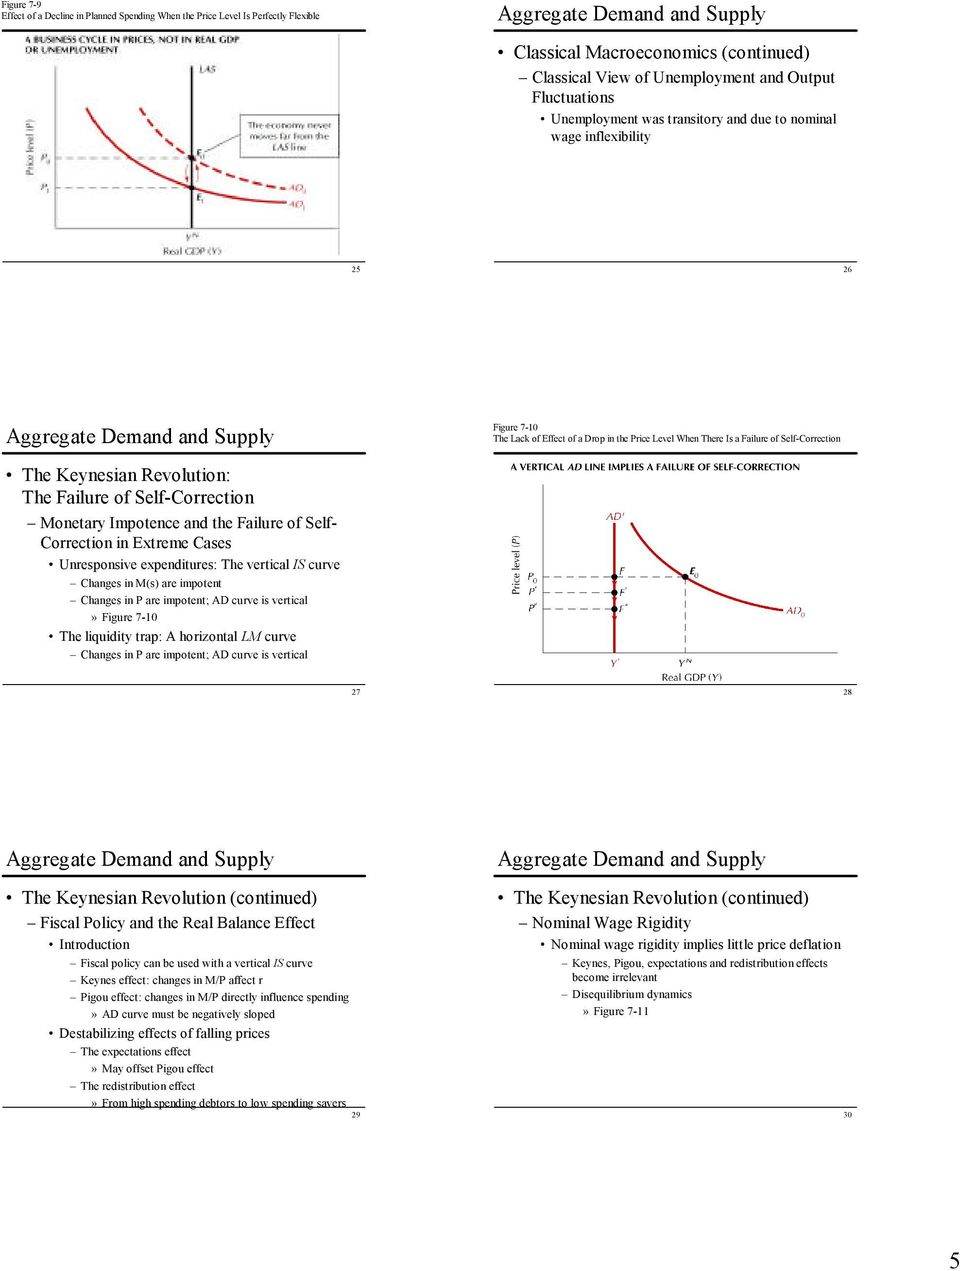 of Self-Correction Monetary Impotence and the Failure of Self- Correction in Extreme Cases Unresponsive expenditures: The vertical IS curve Changes in M(s) are impotent Changes in P are impotent; AD